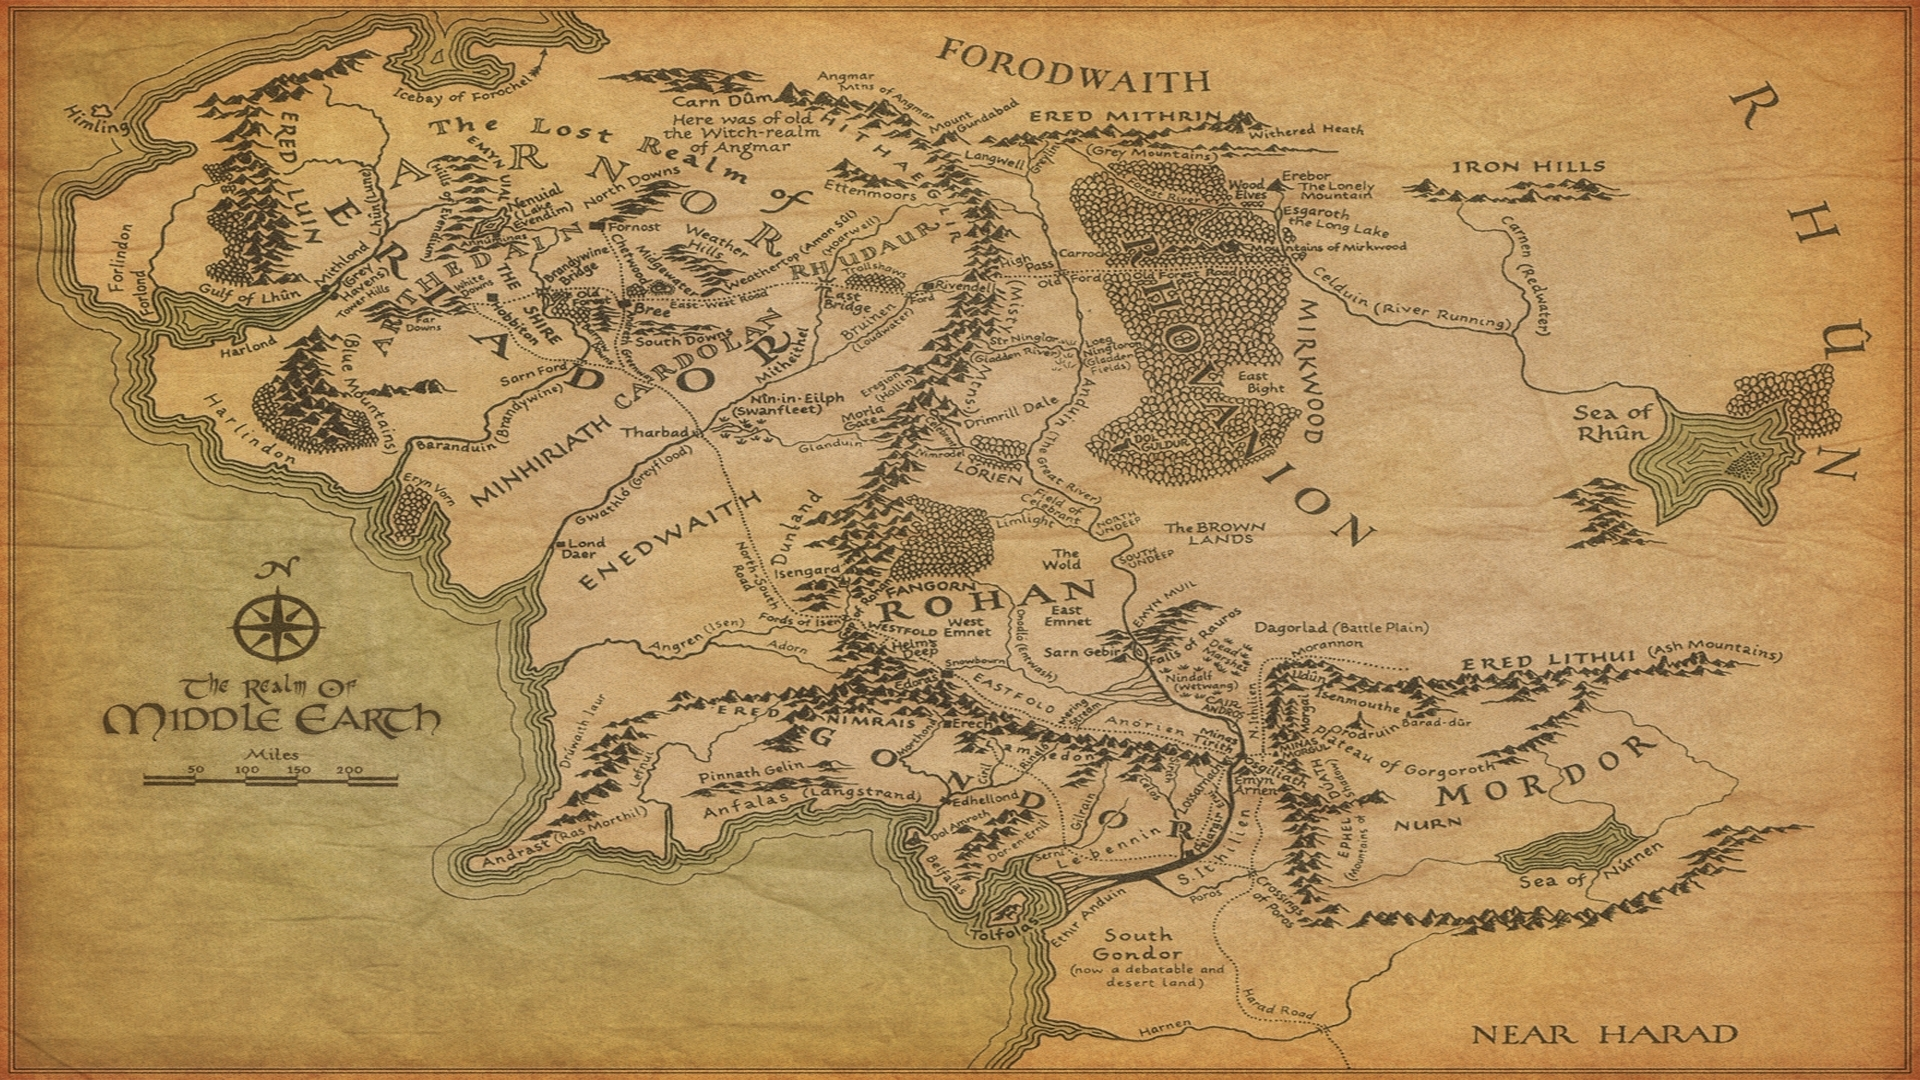 lord of the rings maps middleearth 1920x1080 wallpaper Best Wallpapers 1920x1080